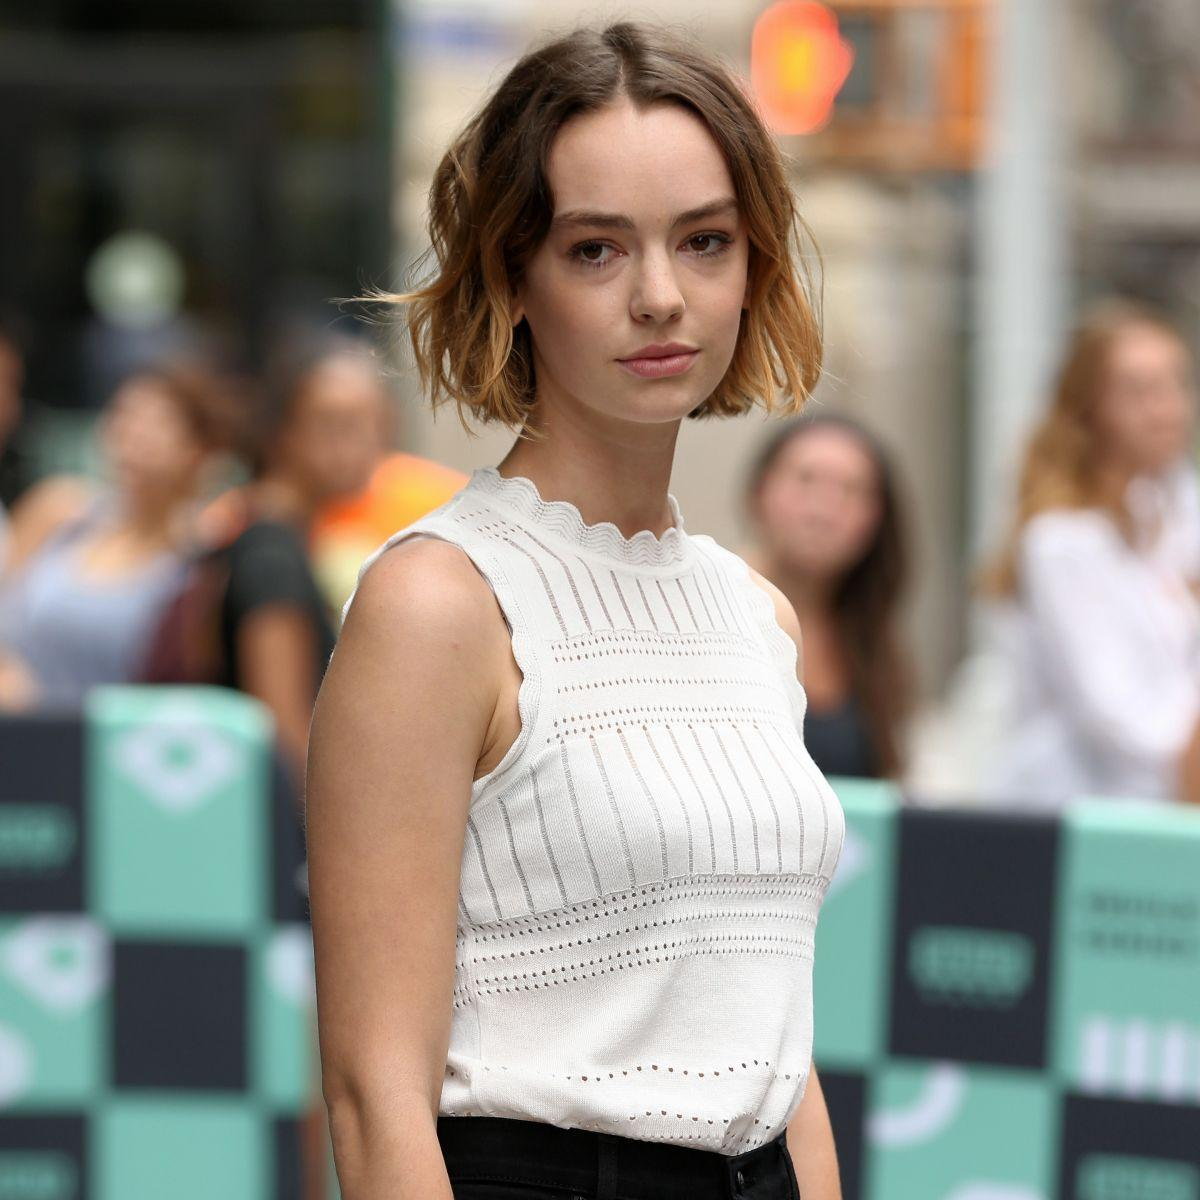 2019 Brigette Lundy-Paine naked (63 foto and video), Tits, Bikini, Feet, in bikini 2020